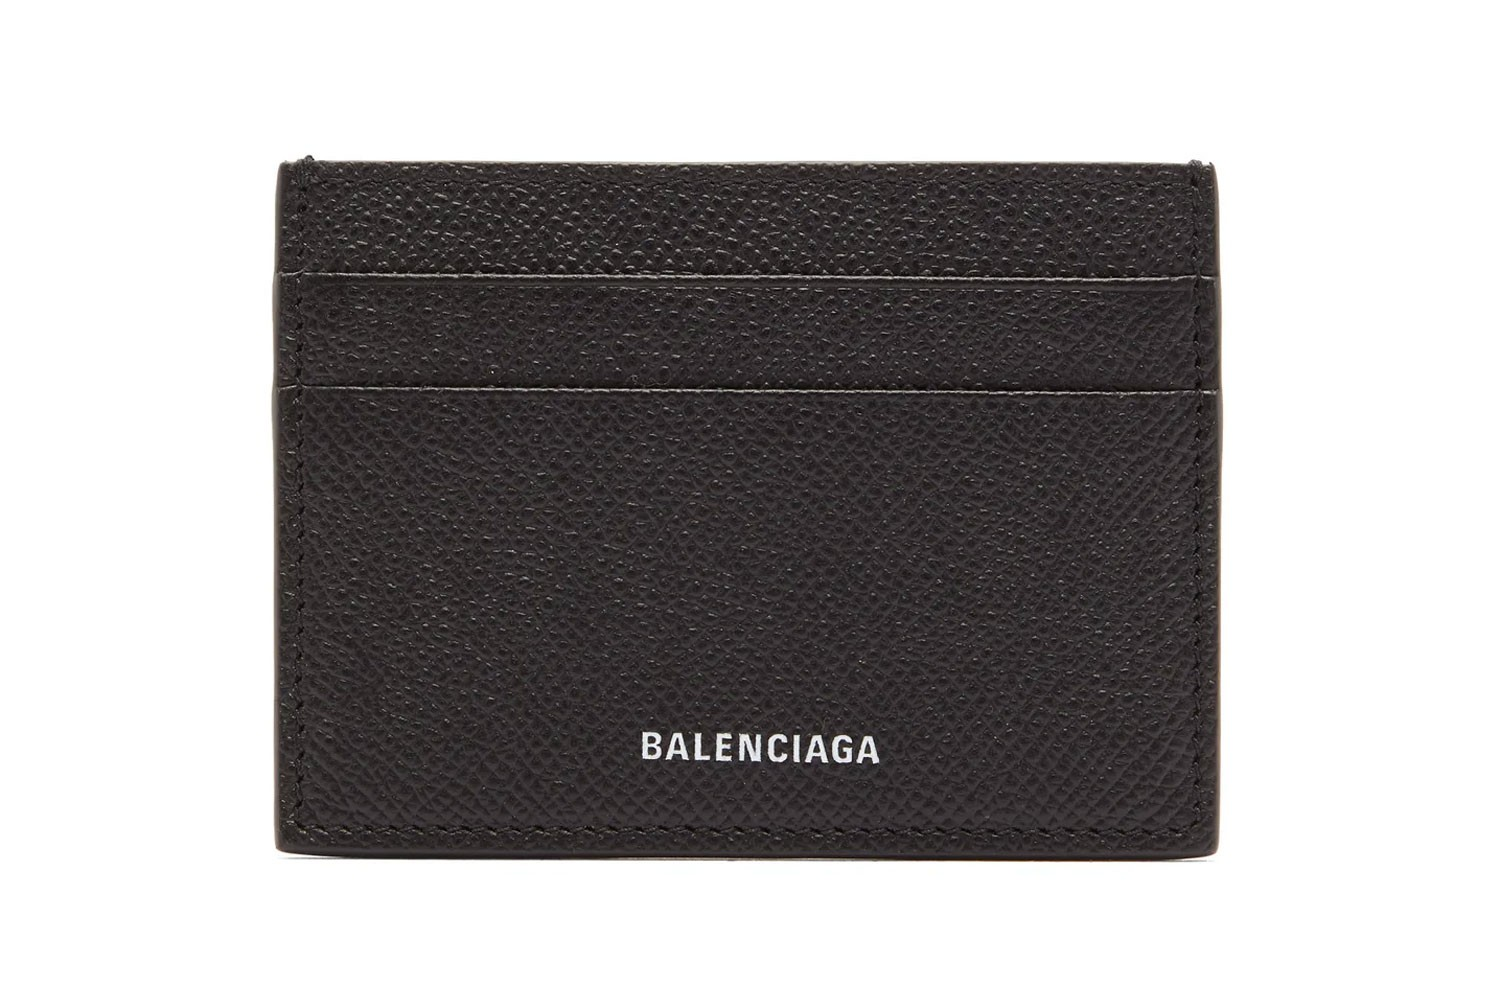 best designer cardholders affordable card cases wallets gucci balenciaga bottega veneta burberry lemaire off-white chloe leather goods